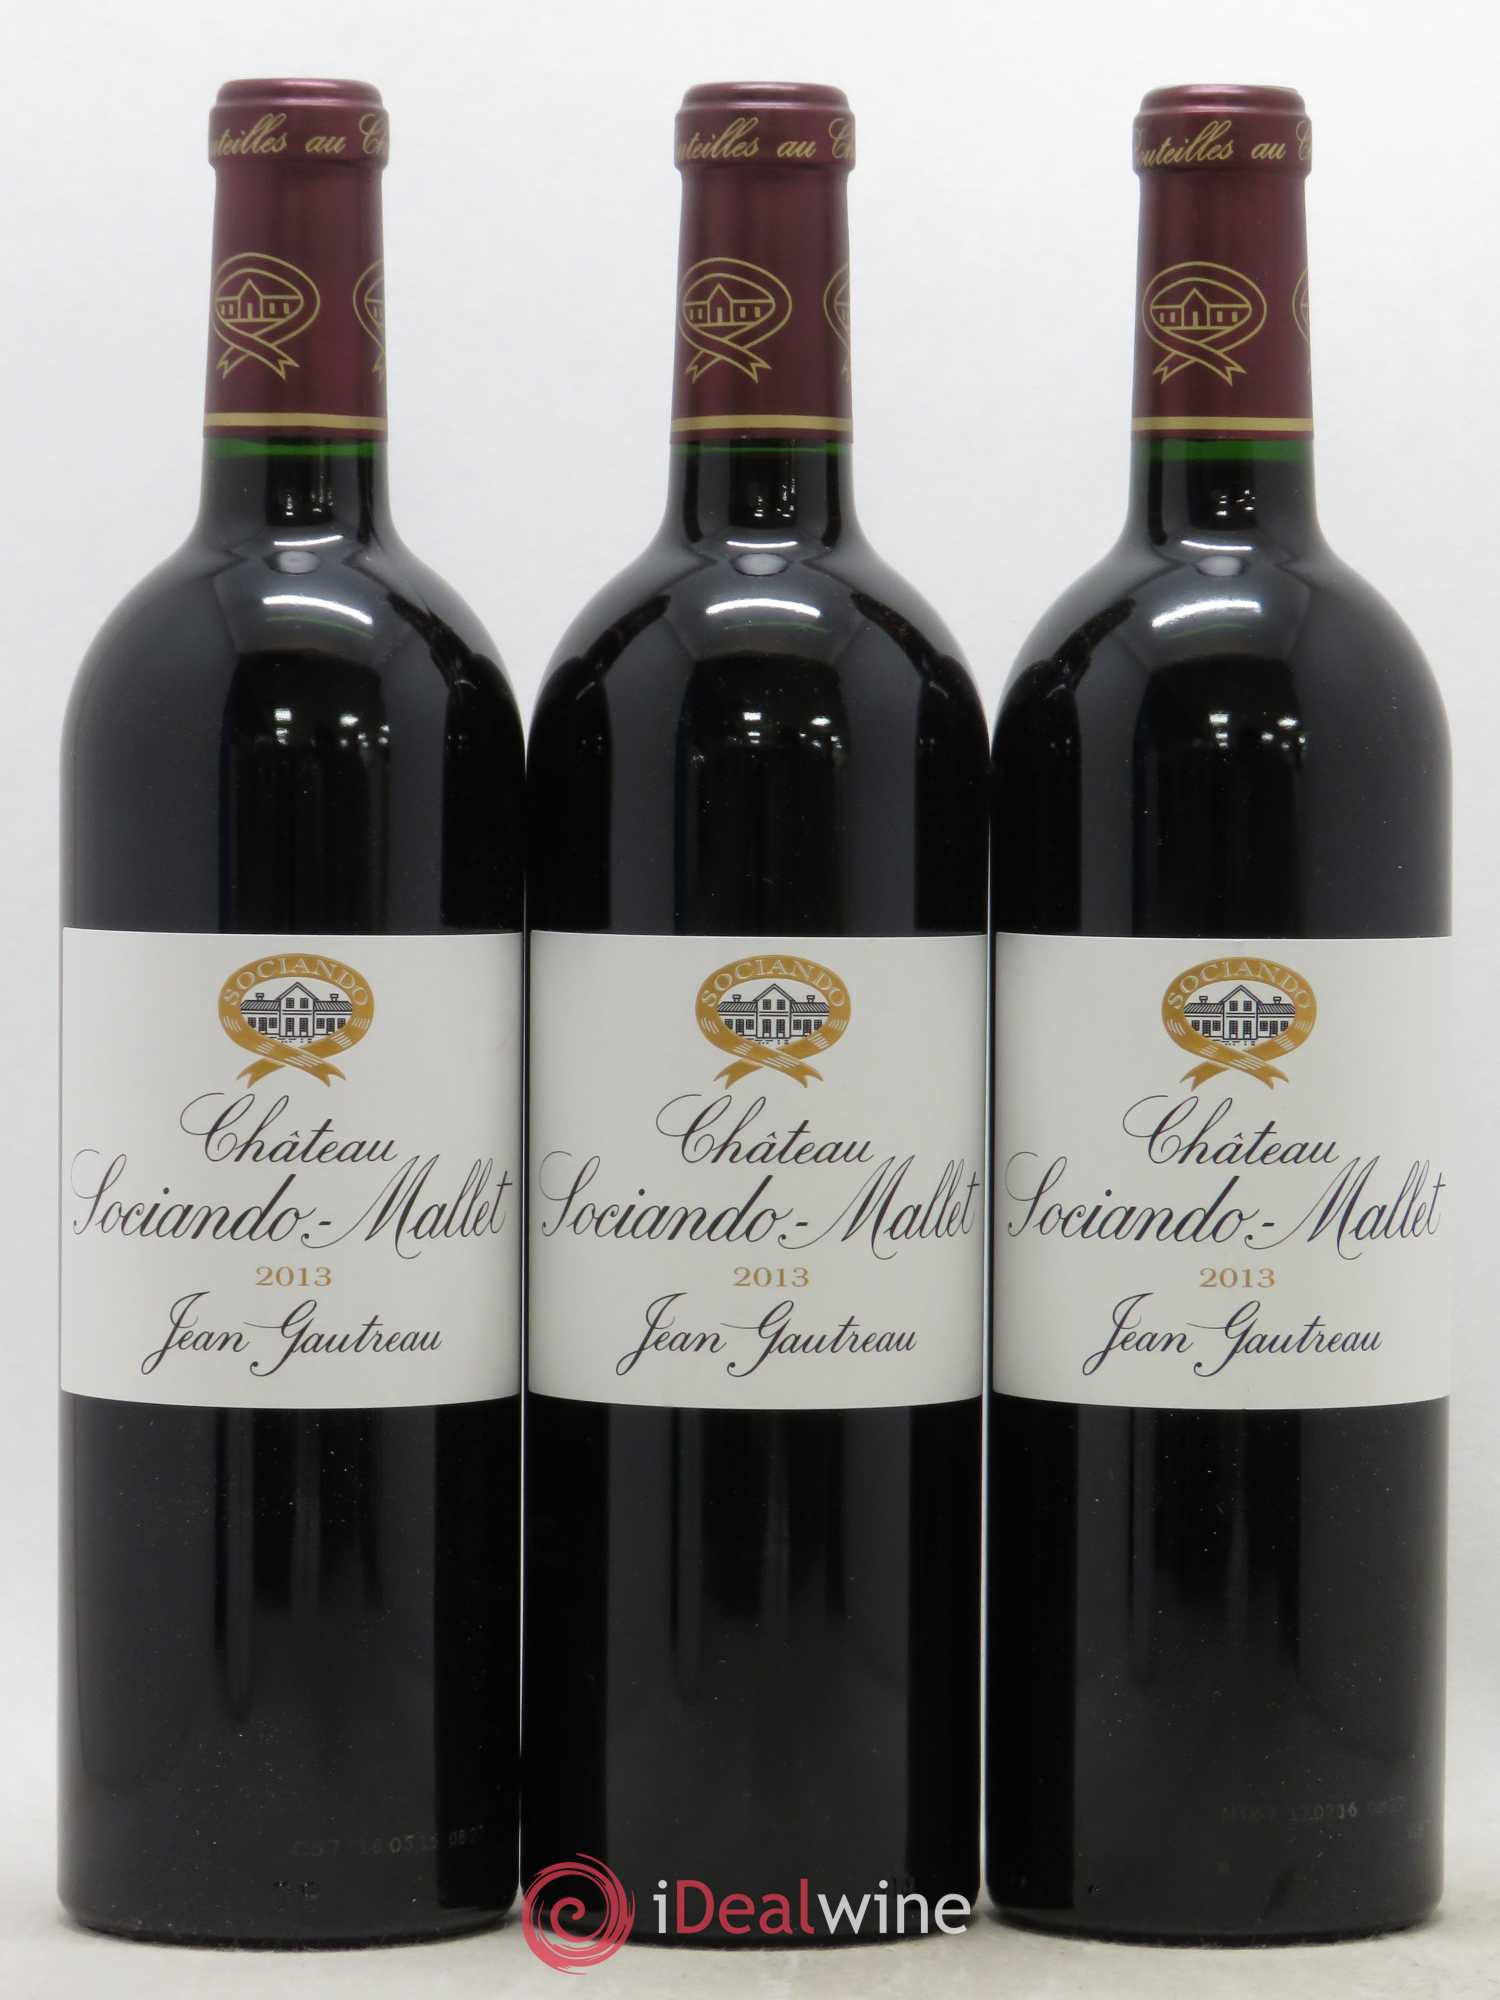 Château Sociando Mallet  2013 - Lot of 3 Bottles